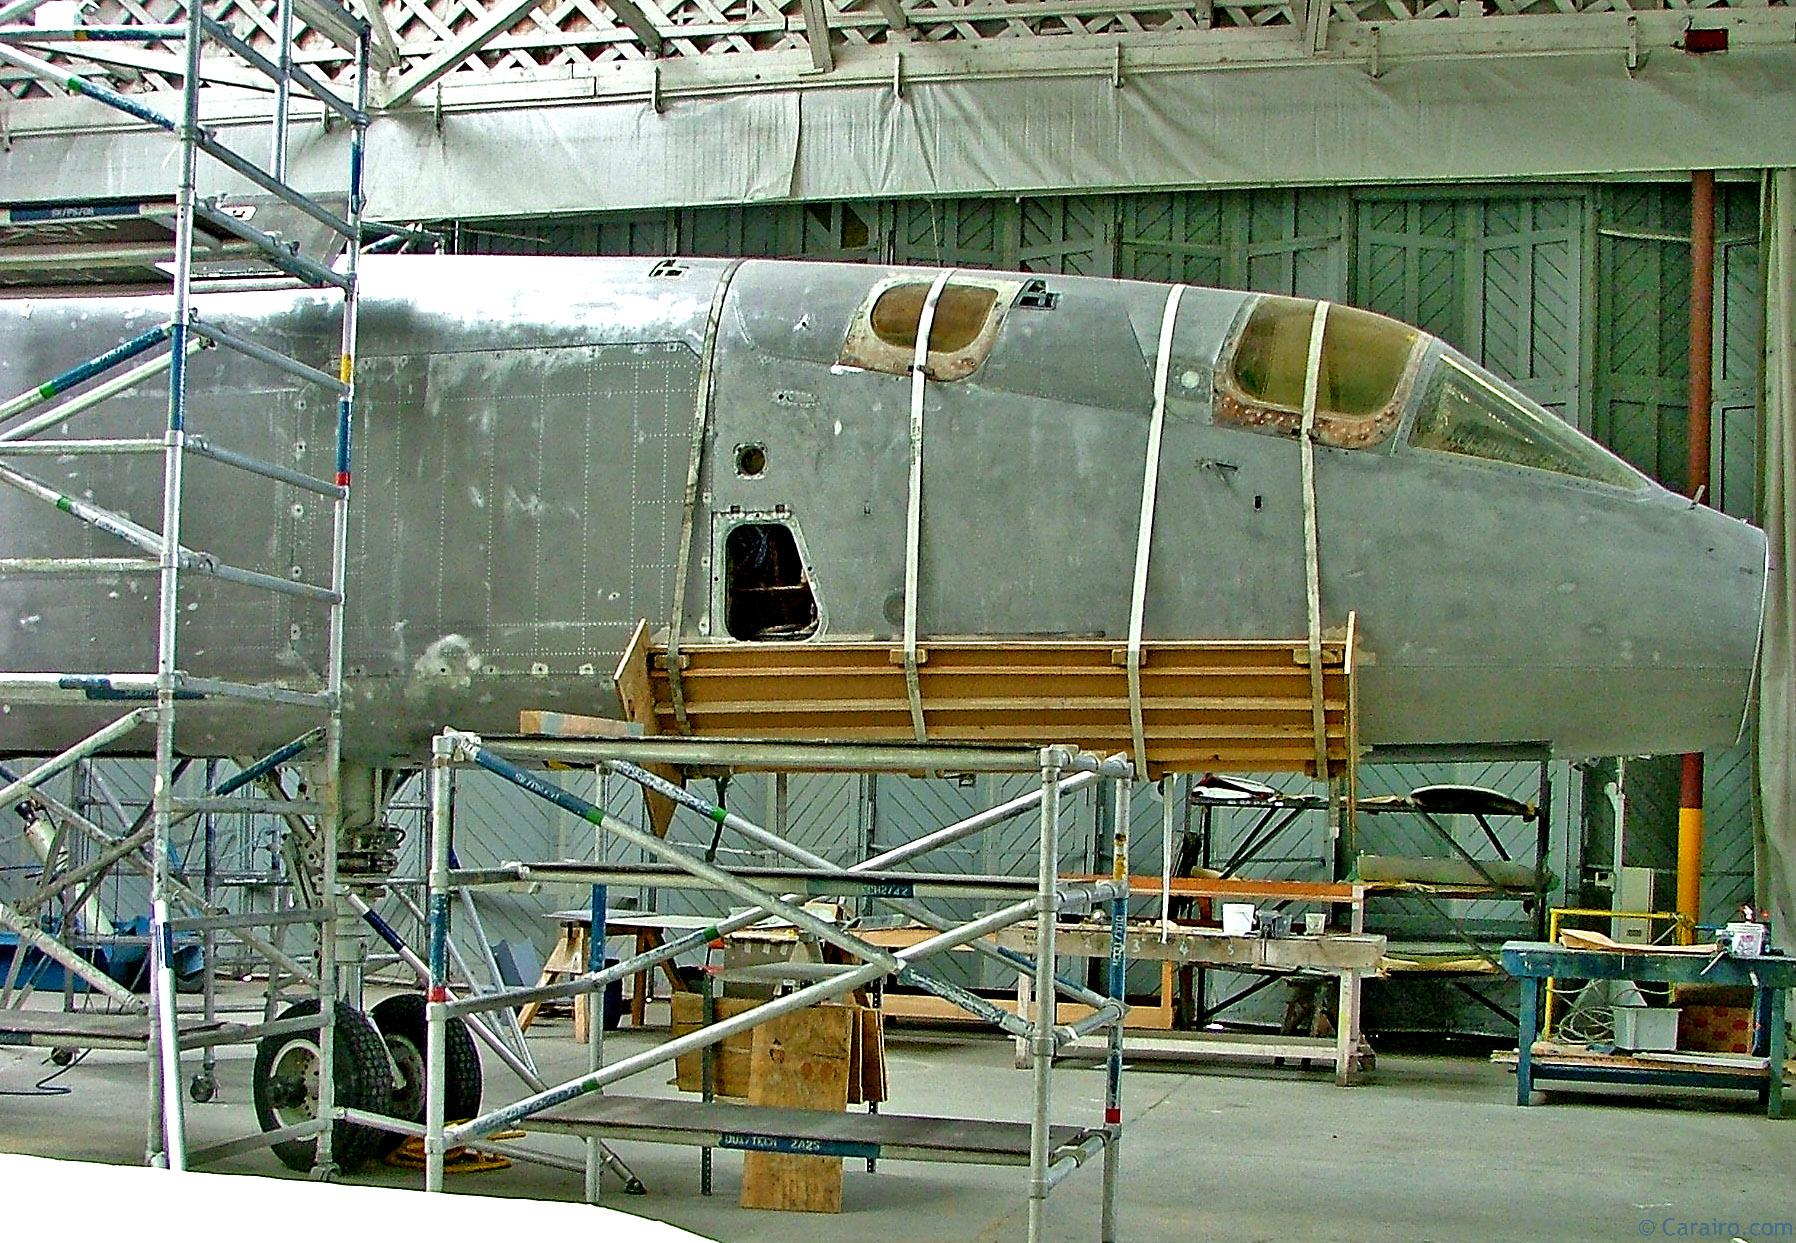 TSR2 ready for a repaint